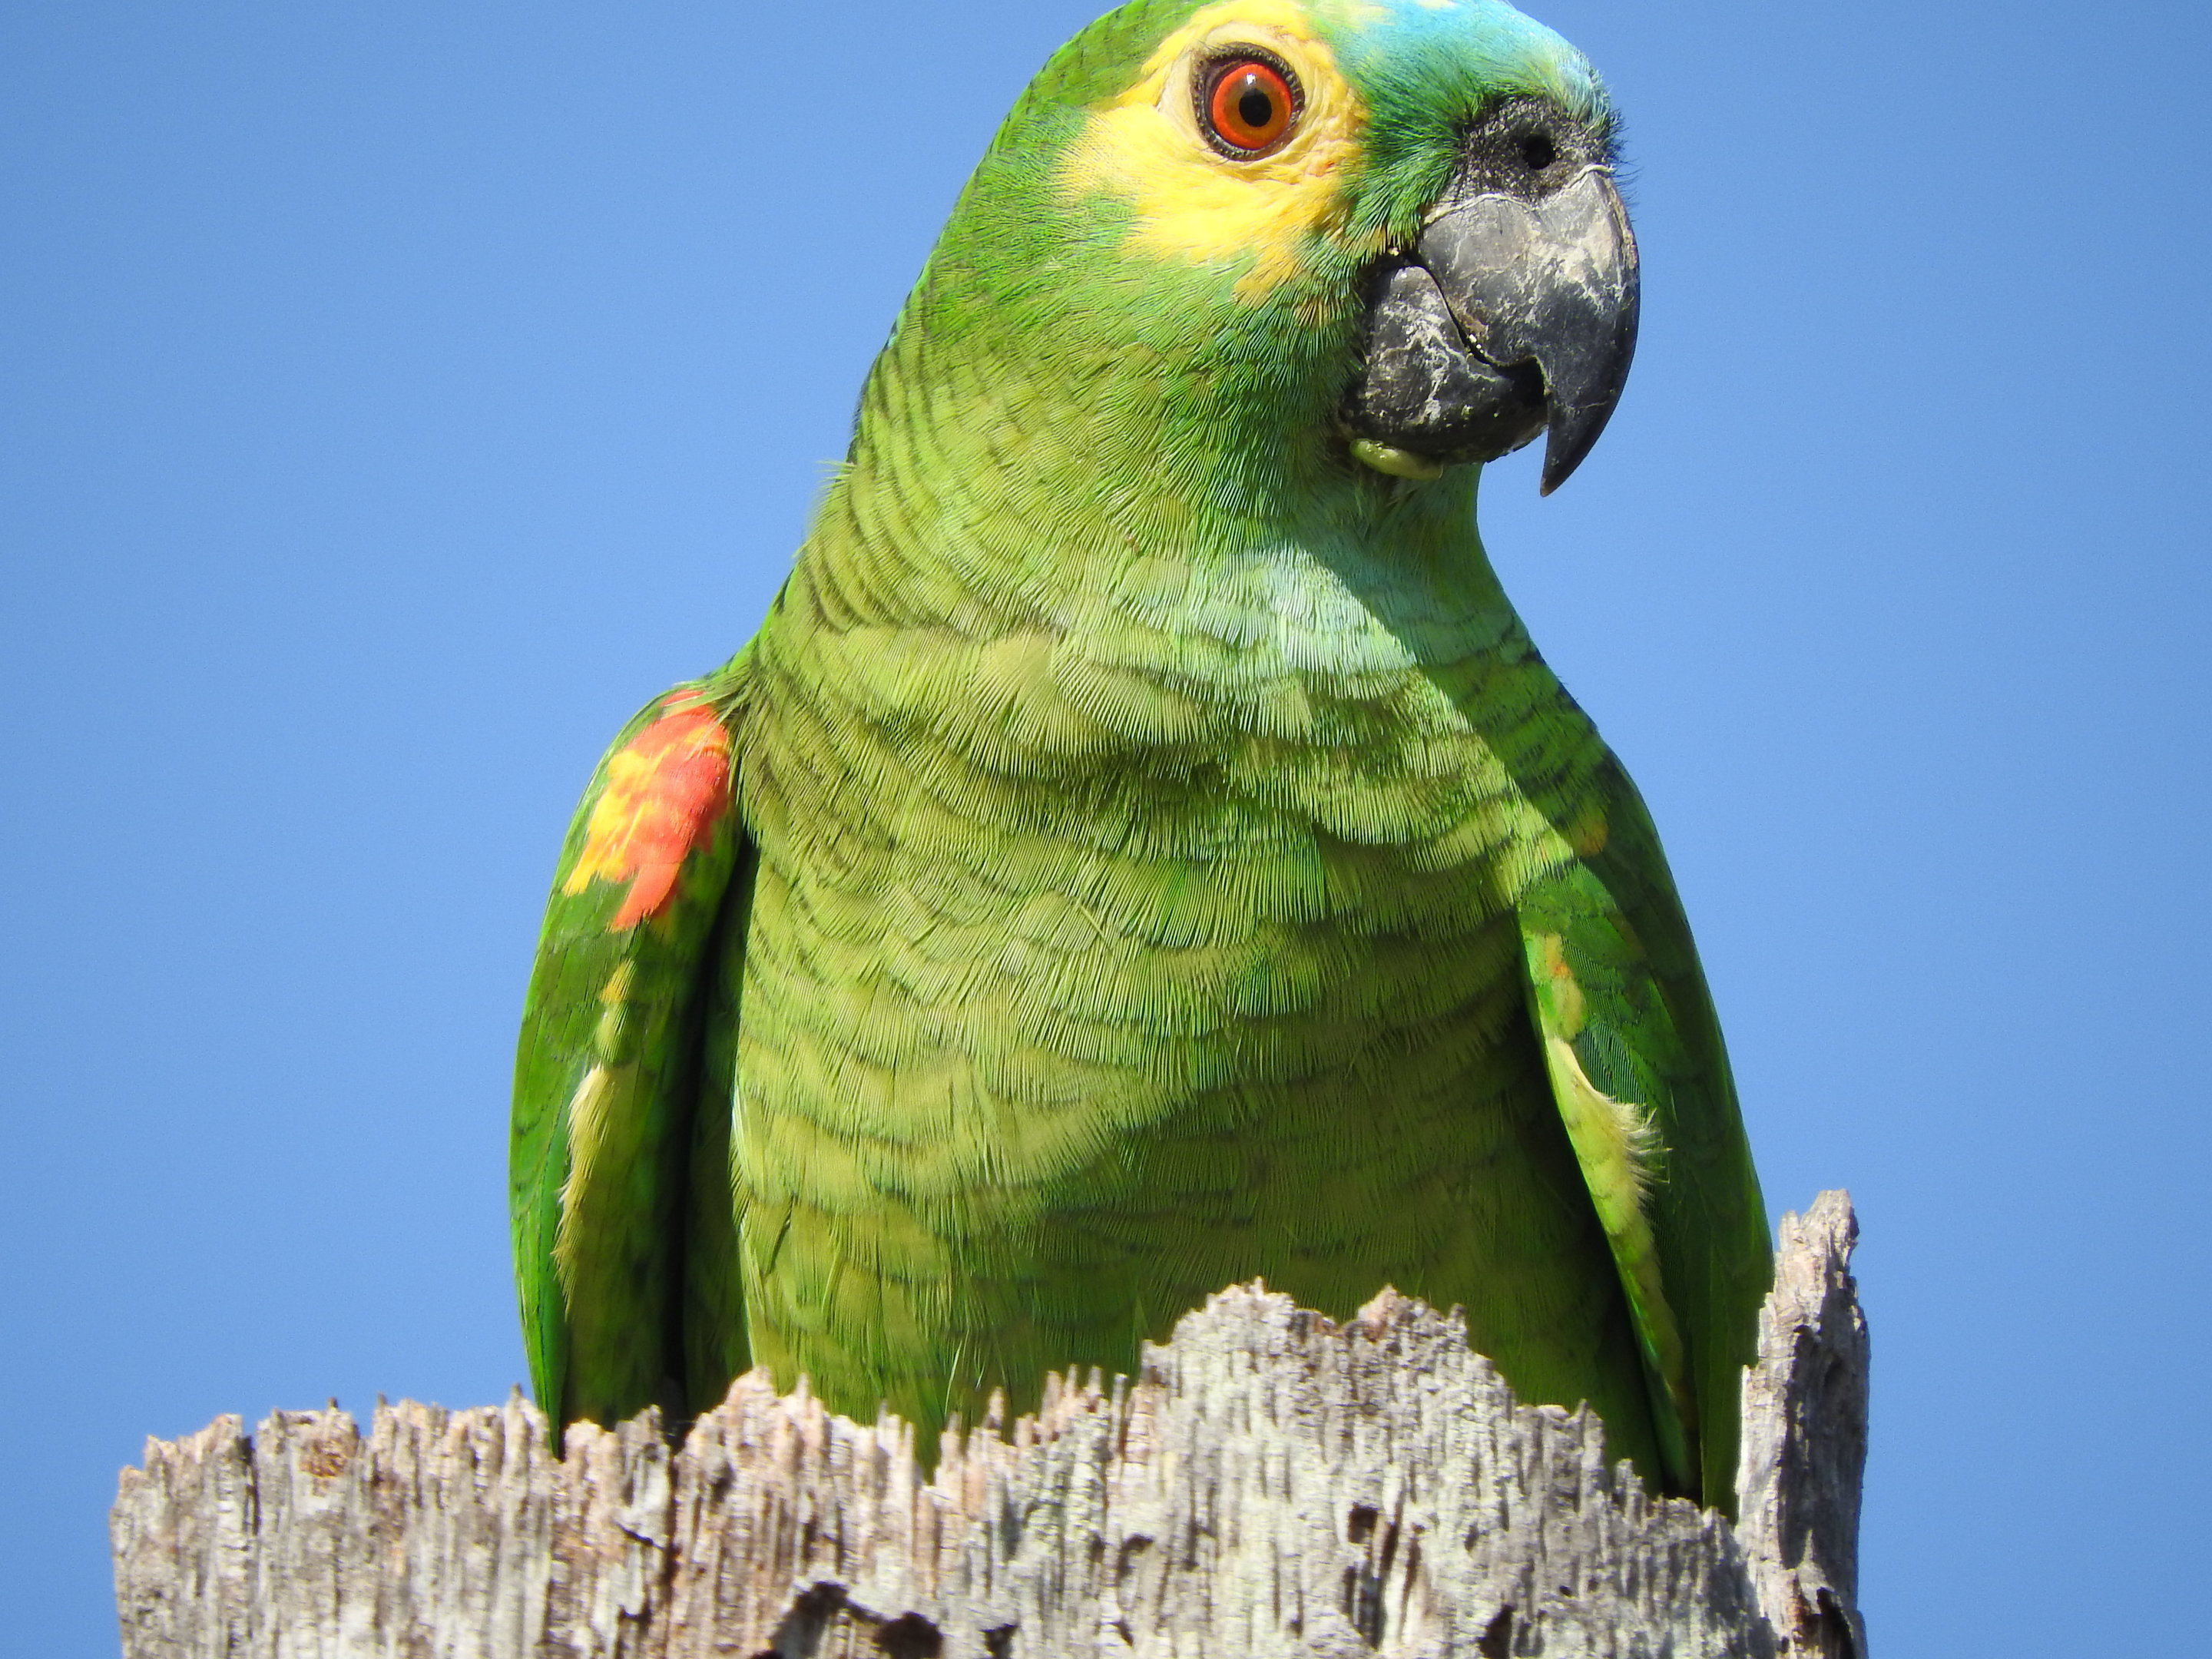 pics How to Know if an Amazon Parrot Is Right for You